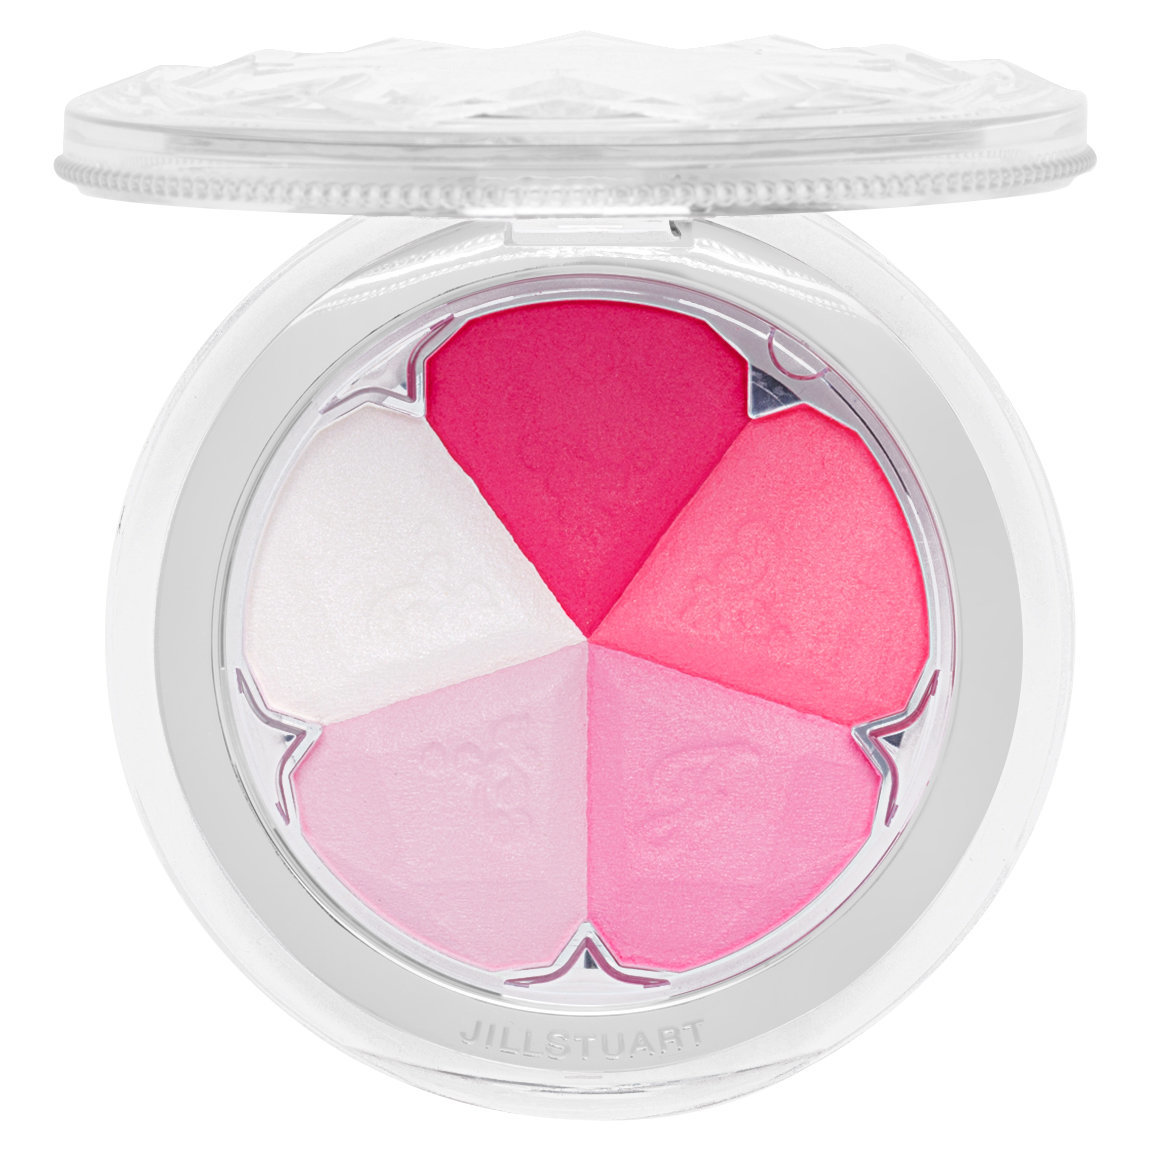 JILL STUART Beauty Bloom Mix Blush Compact 02 product swatch.